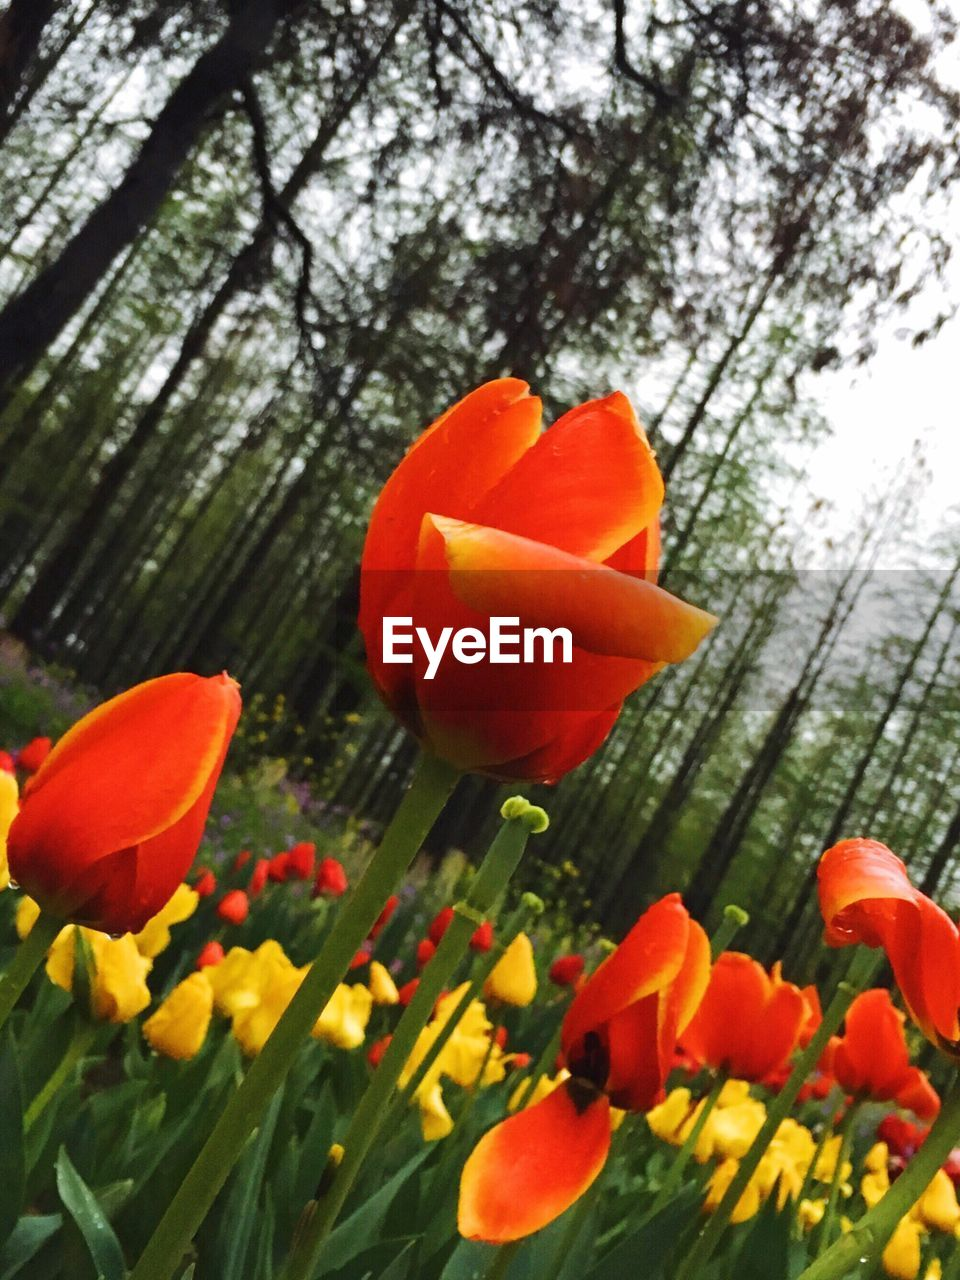 flower, growth, beauty in nature, petal, nature, freshness, orange color, plant, fragility, blooming, flower head, day, no people, outdoors, tree, close-up, sky